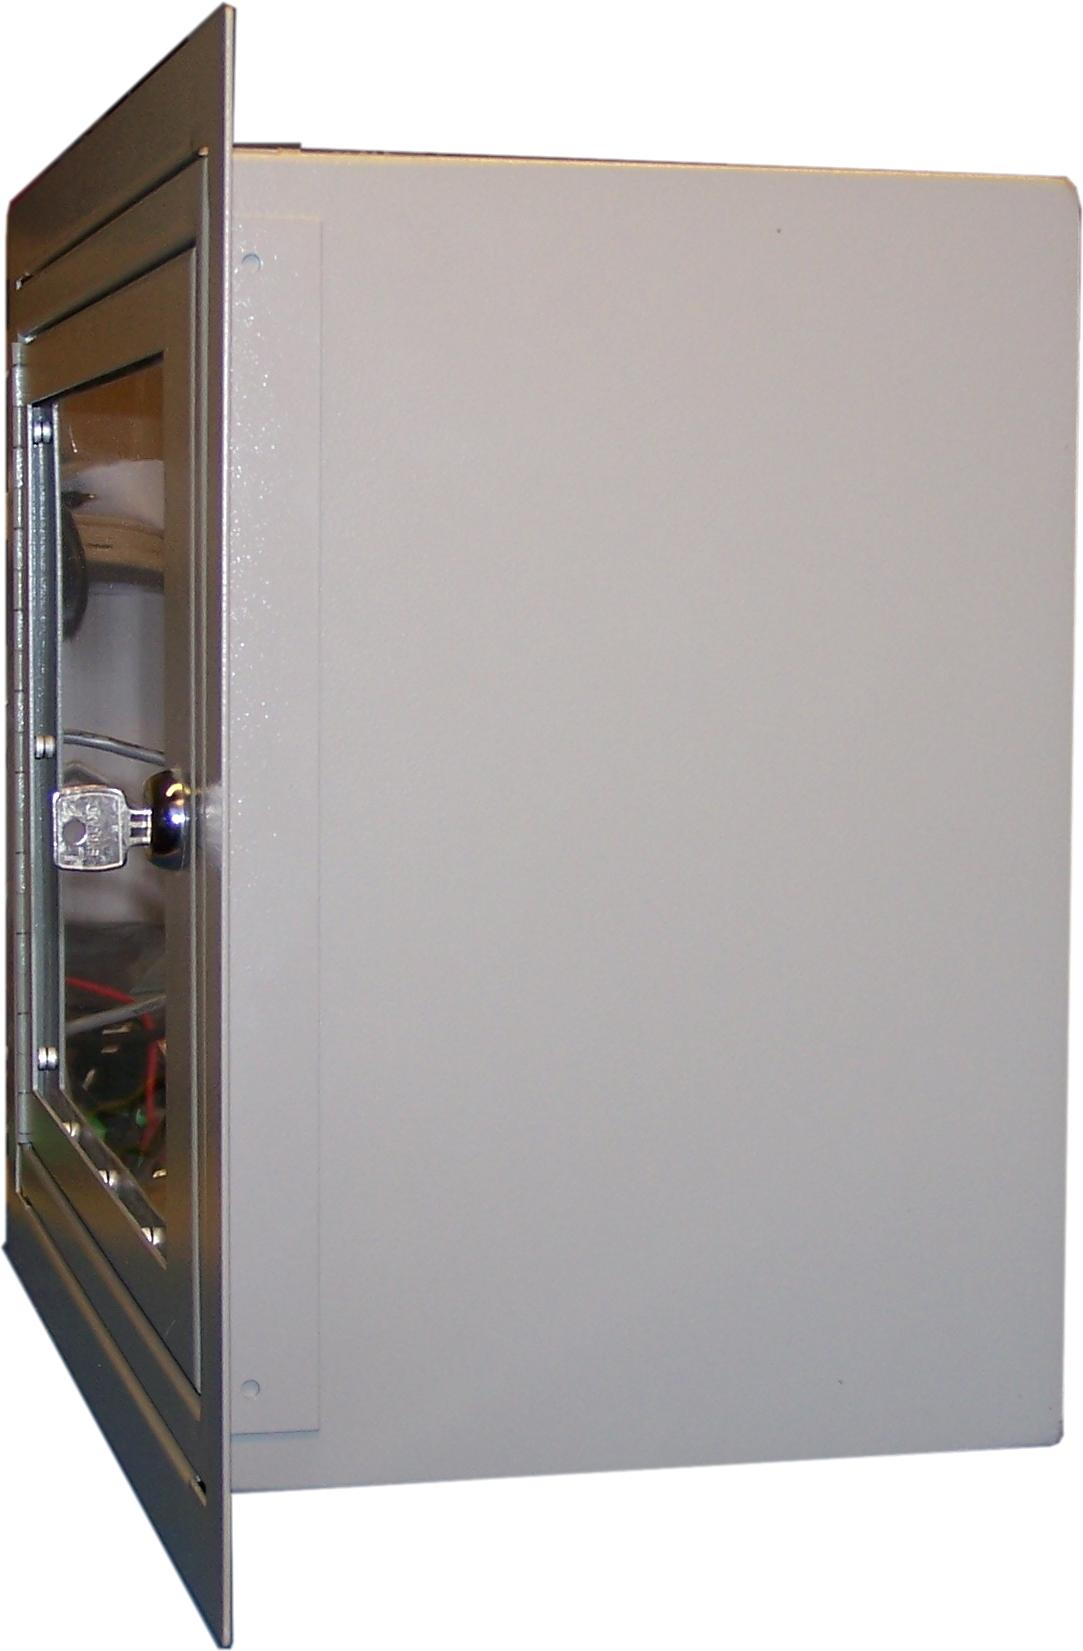 PAI Group Web Shop | Baldwin Boxall OmniCare BVCRFB1 Control Panel Flush 48-64 Way Panel Bezel Grey